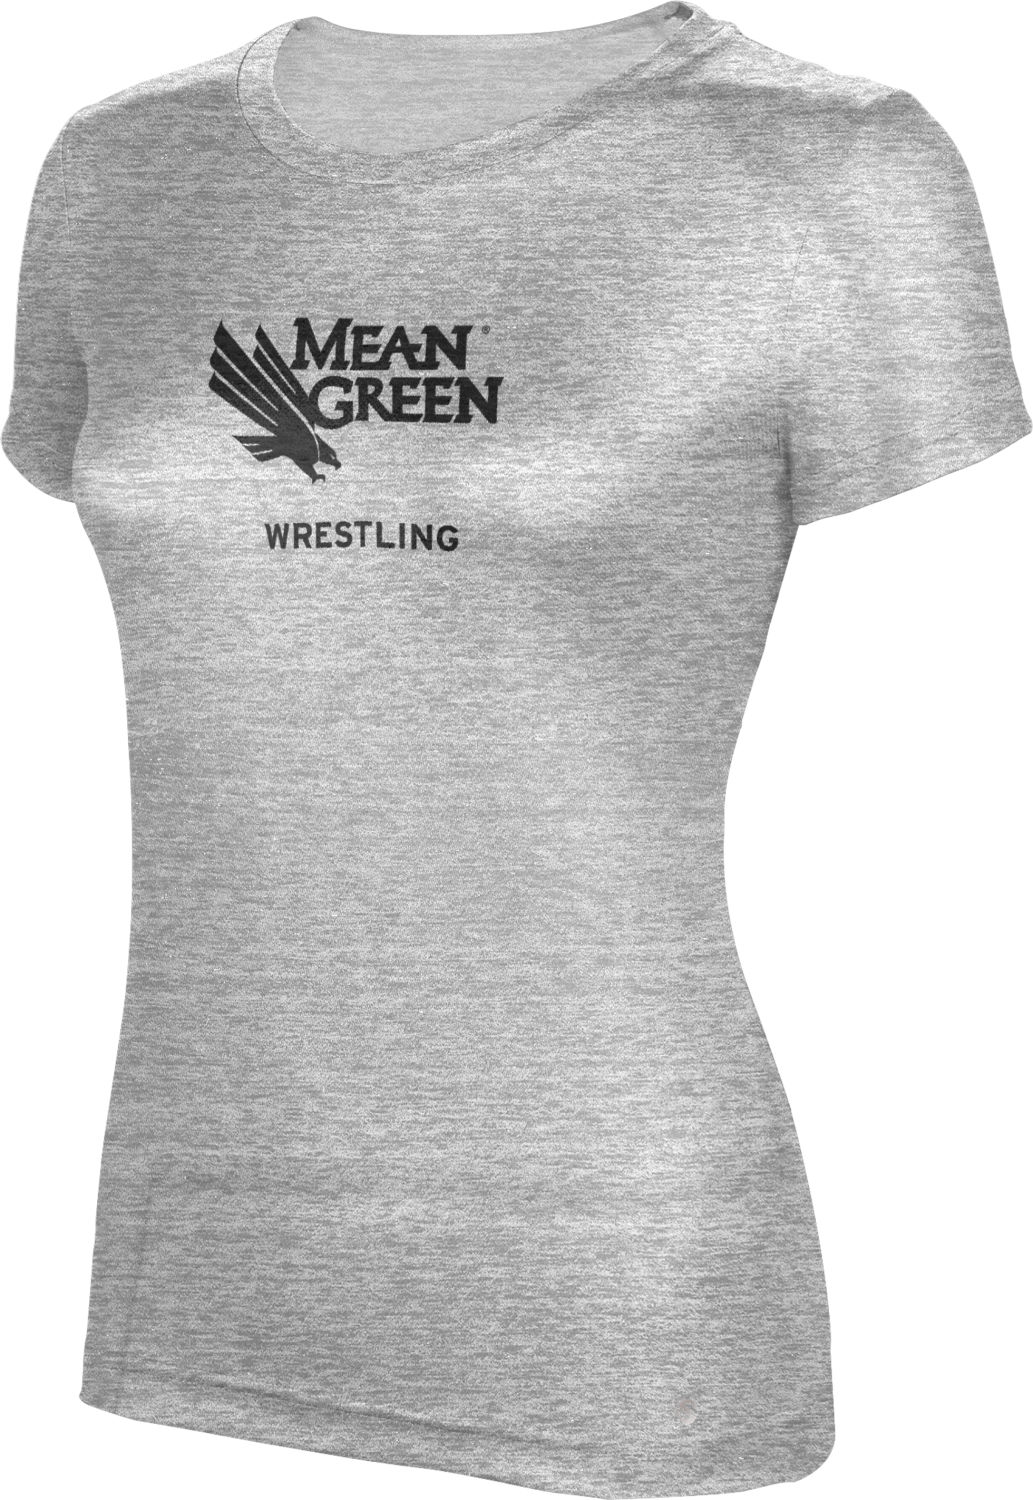 ProSphere Wrestling Womens TriBlend Distressed Tee